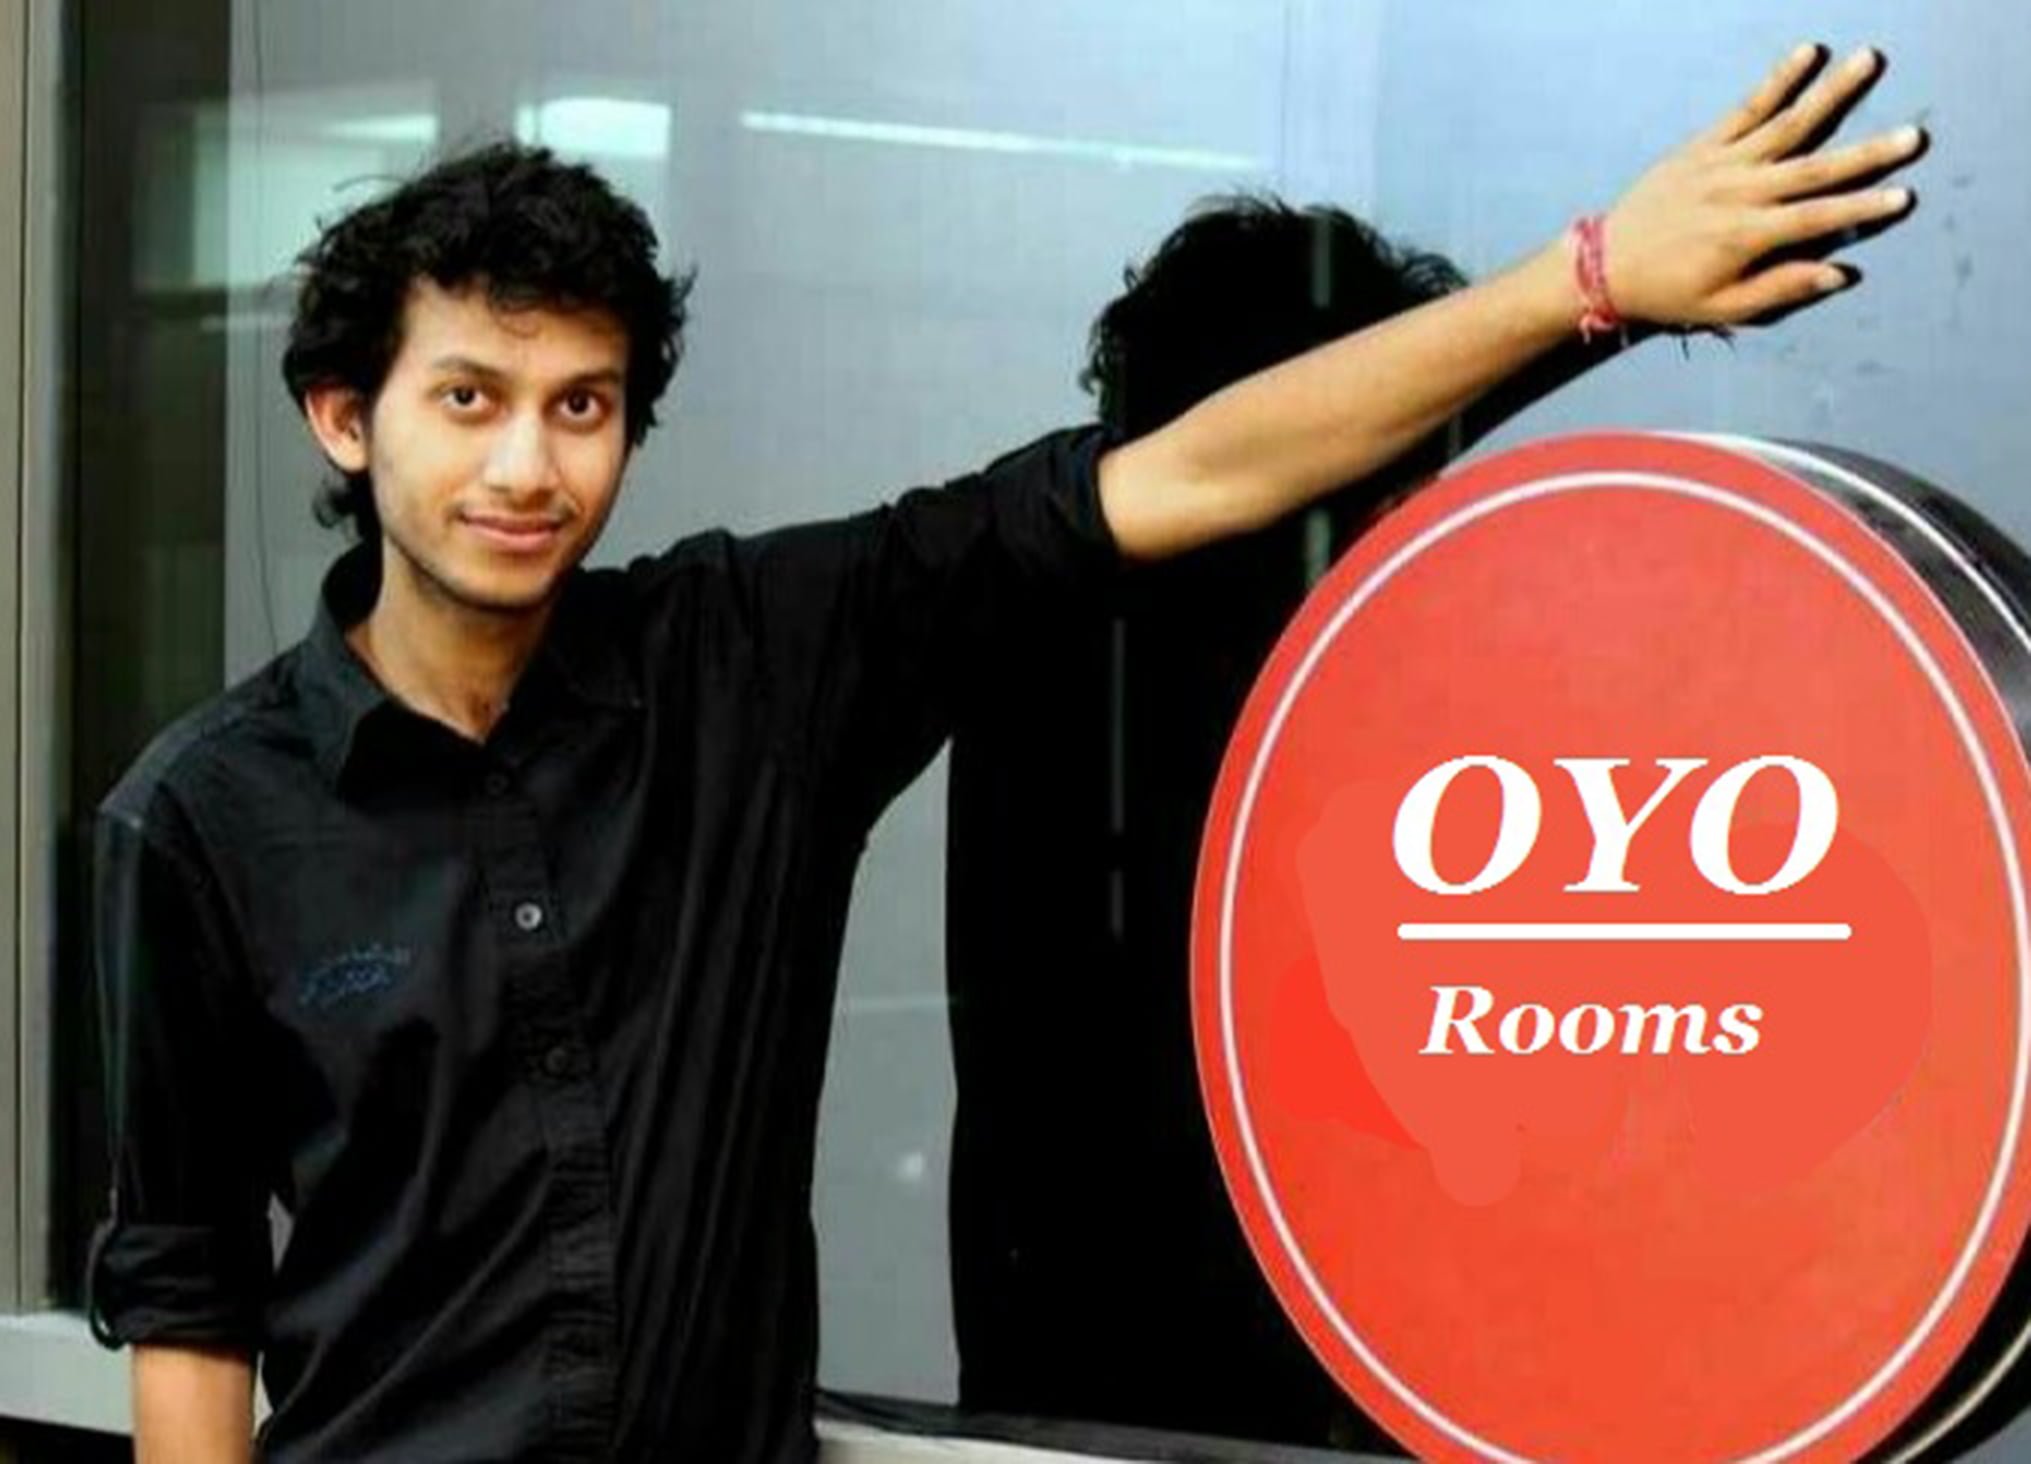 The Man Who Found The Uber Of Hotel Business Ritesh